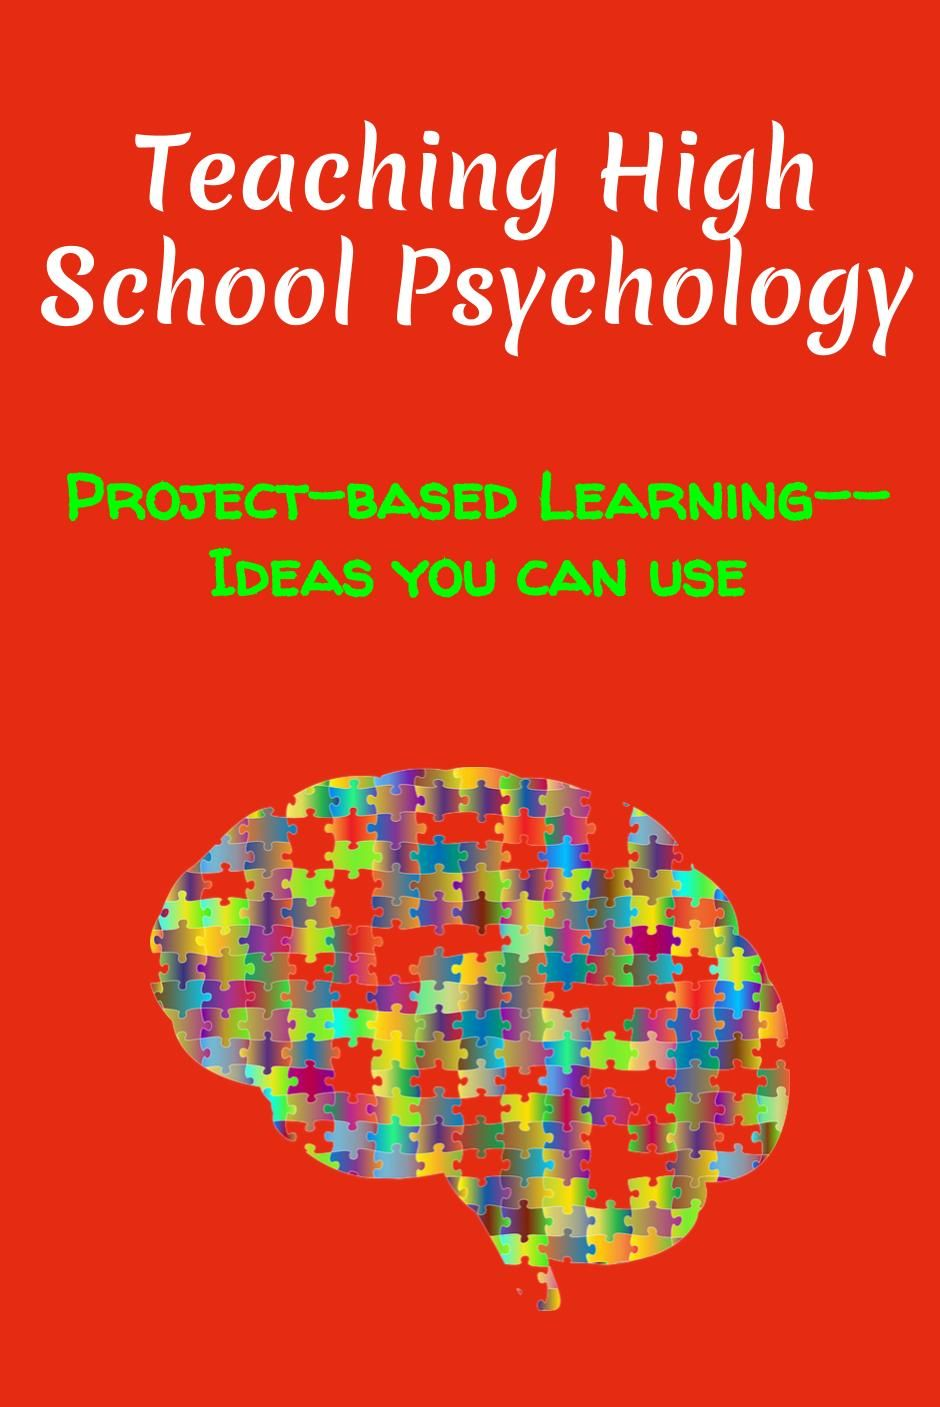 high school psychology project ideas